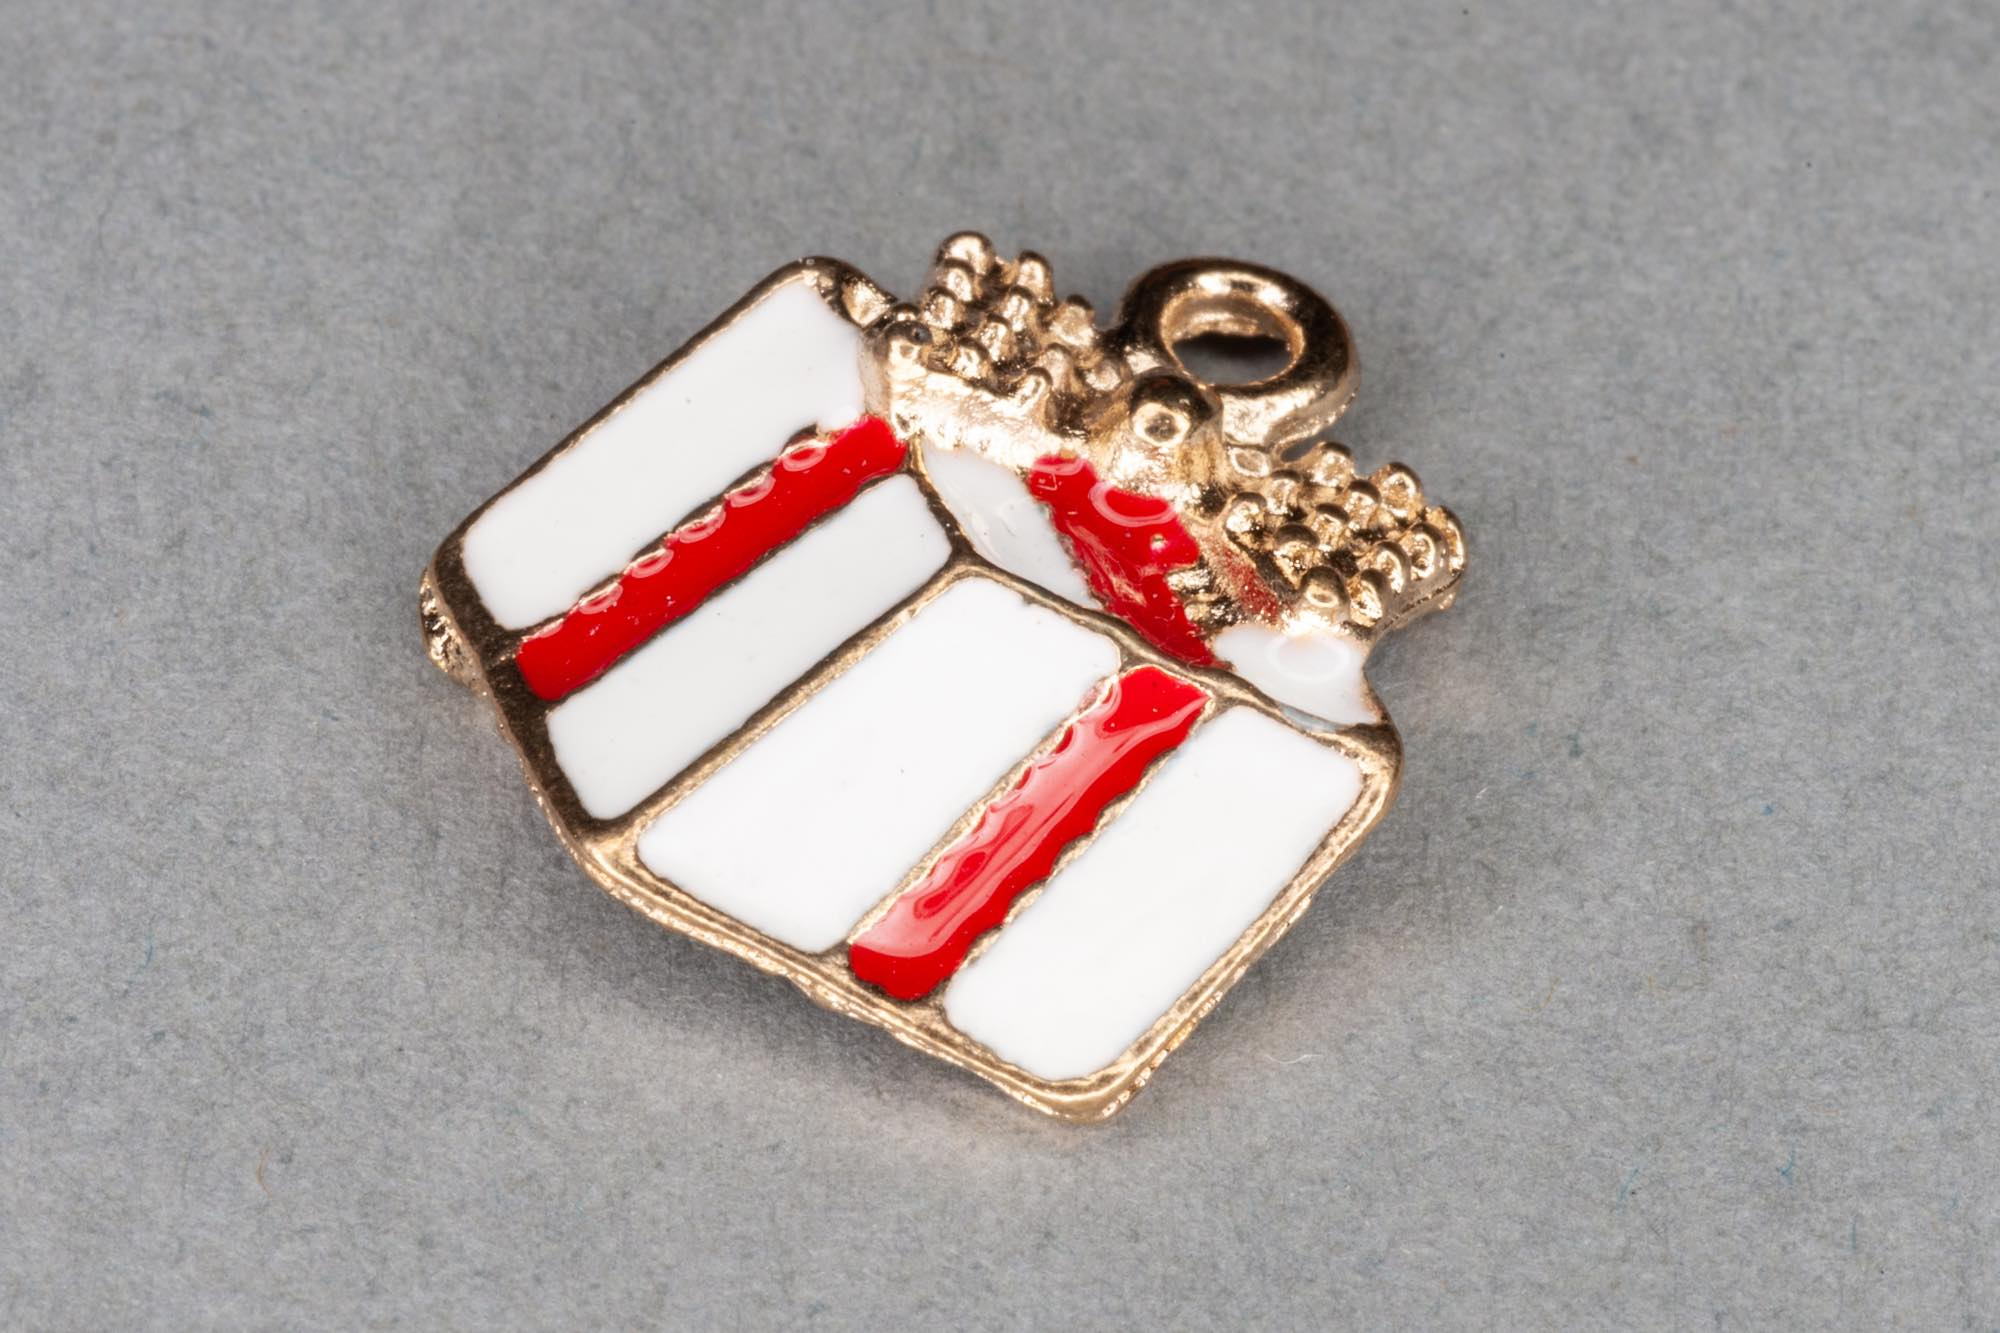 Enamel Gold Boxed Gift Charm 17x16mm